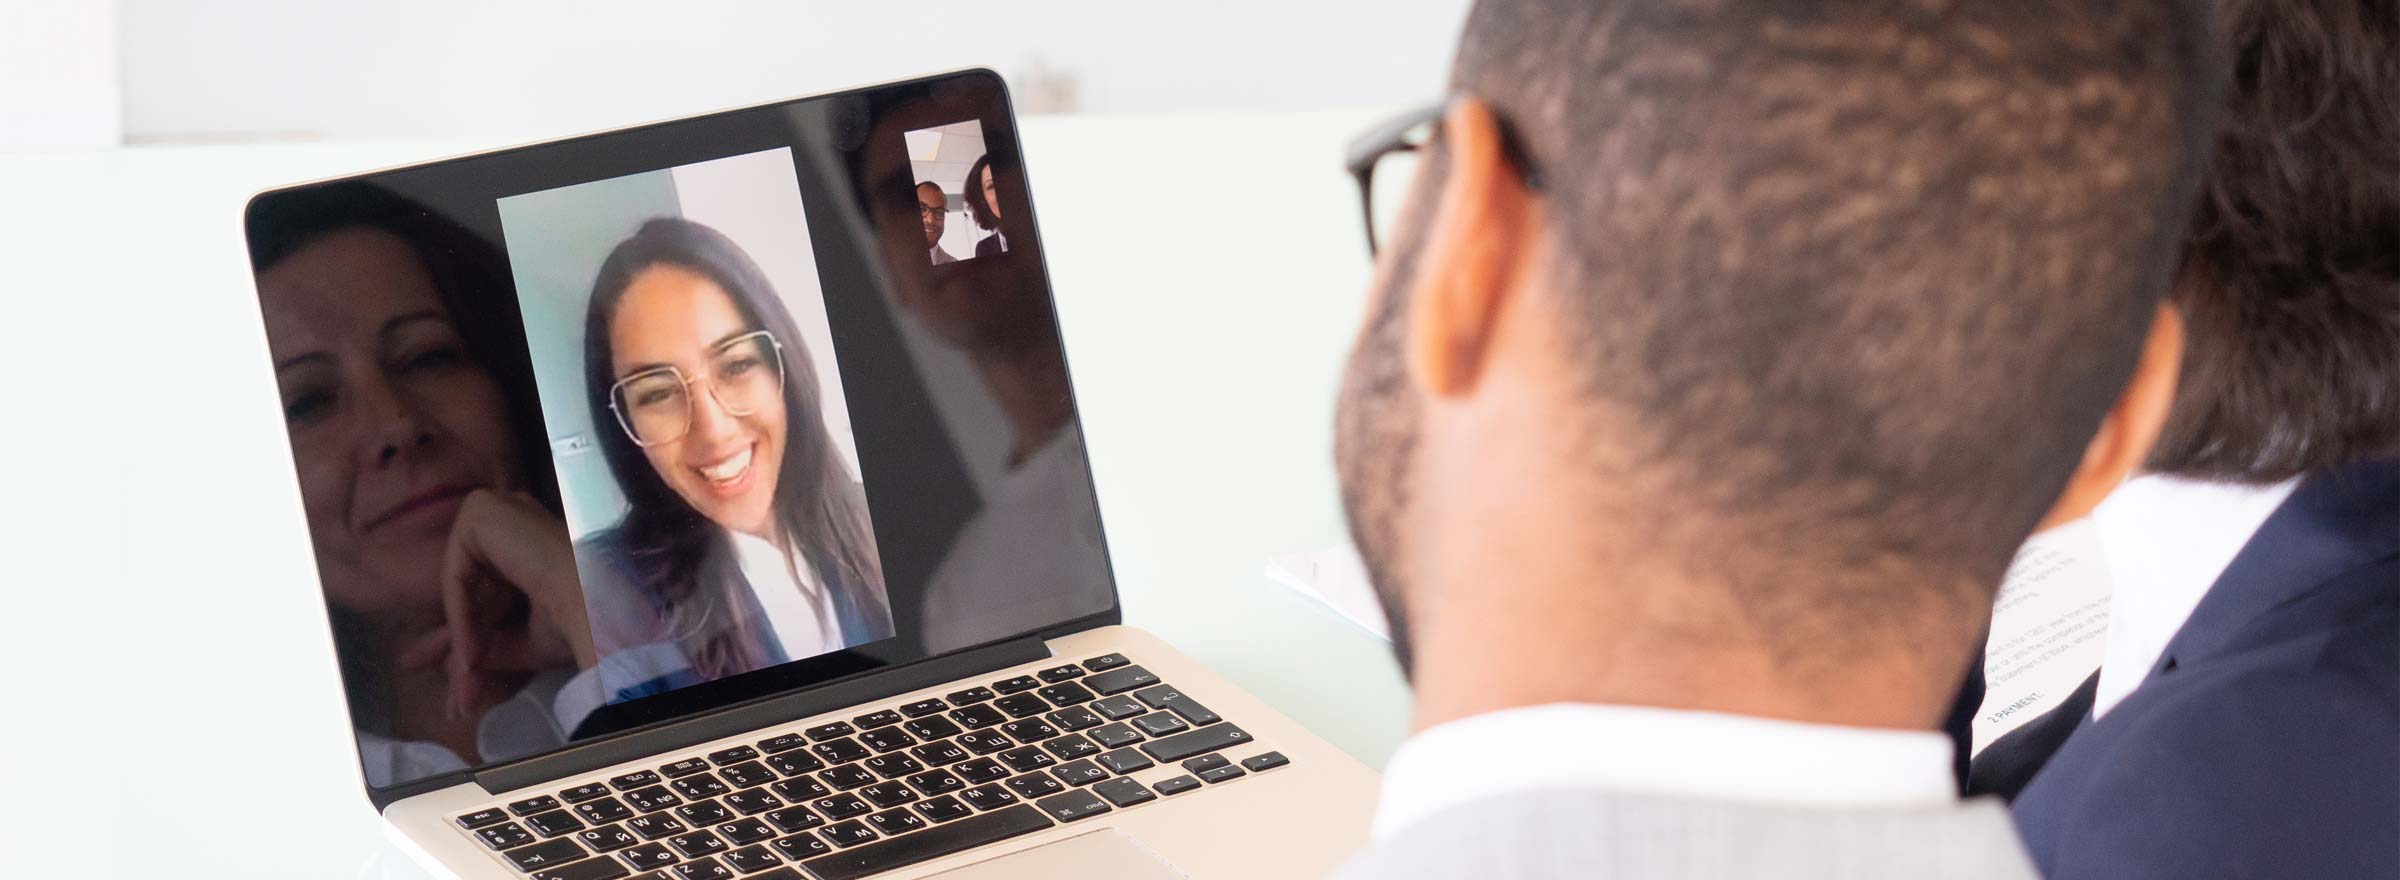 People in a video conference on a laptop